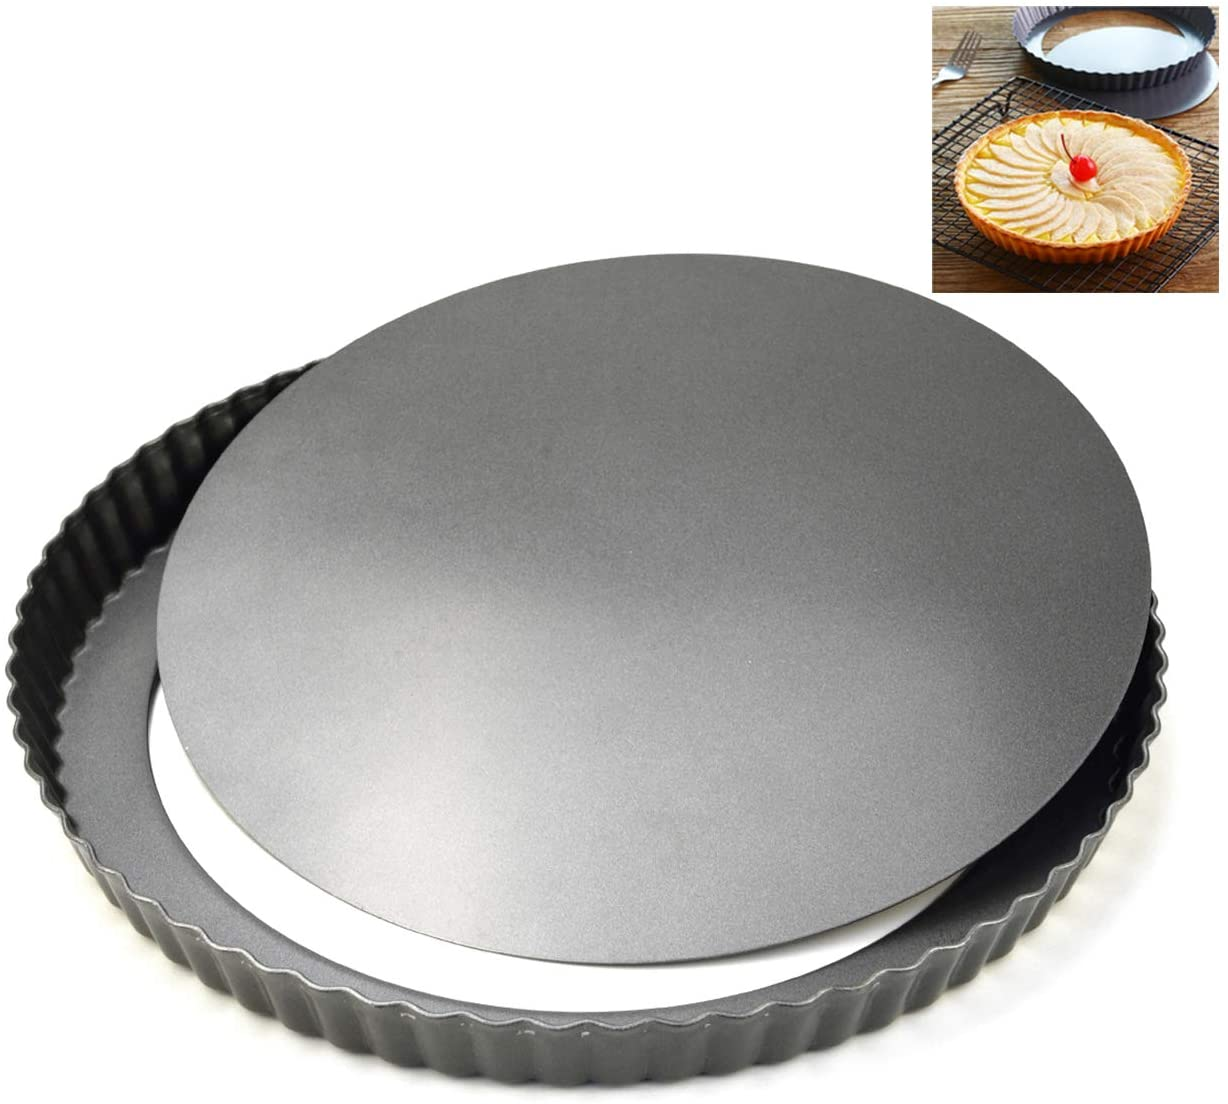 NST62 NS Round Tart Pan 7.5 x 1 (Loose bottom)